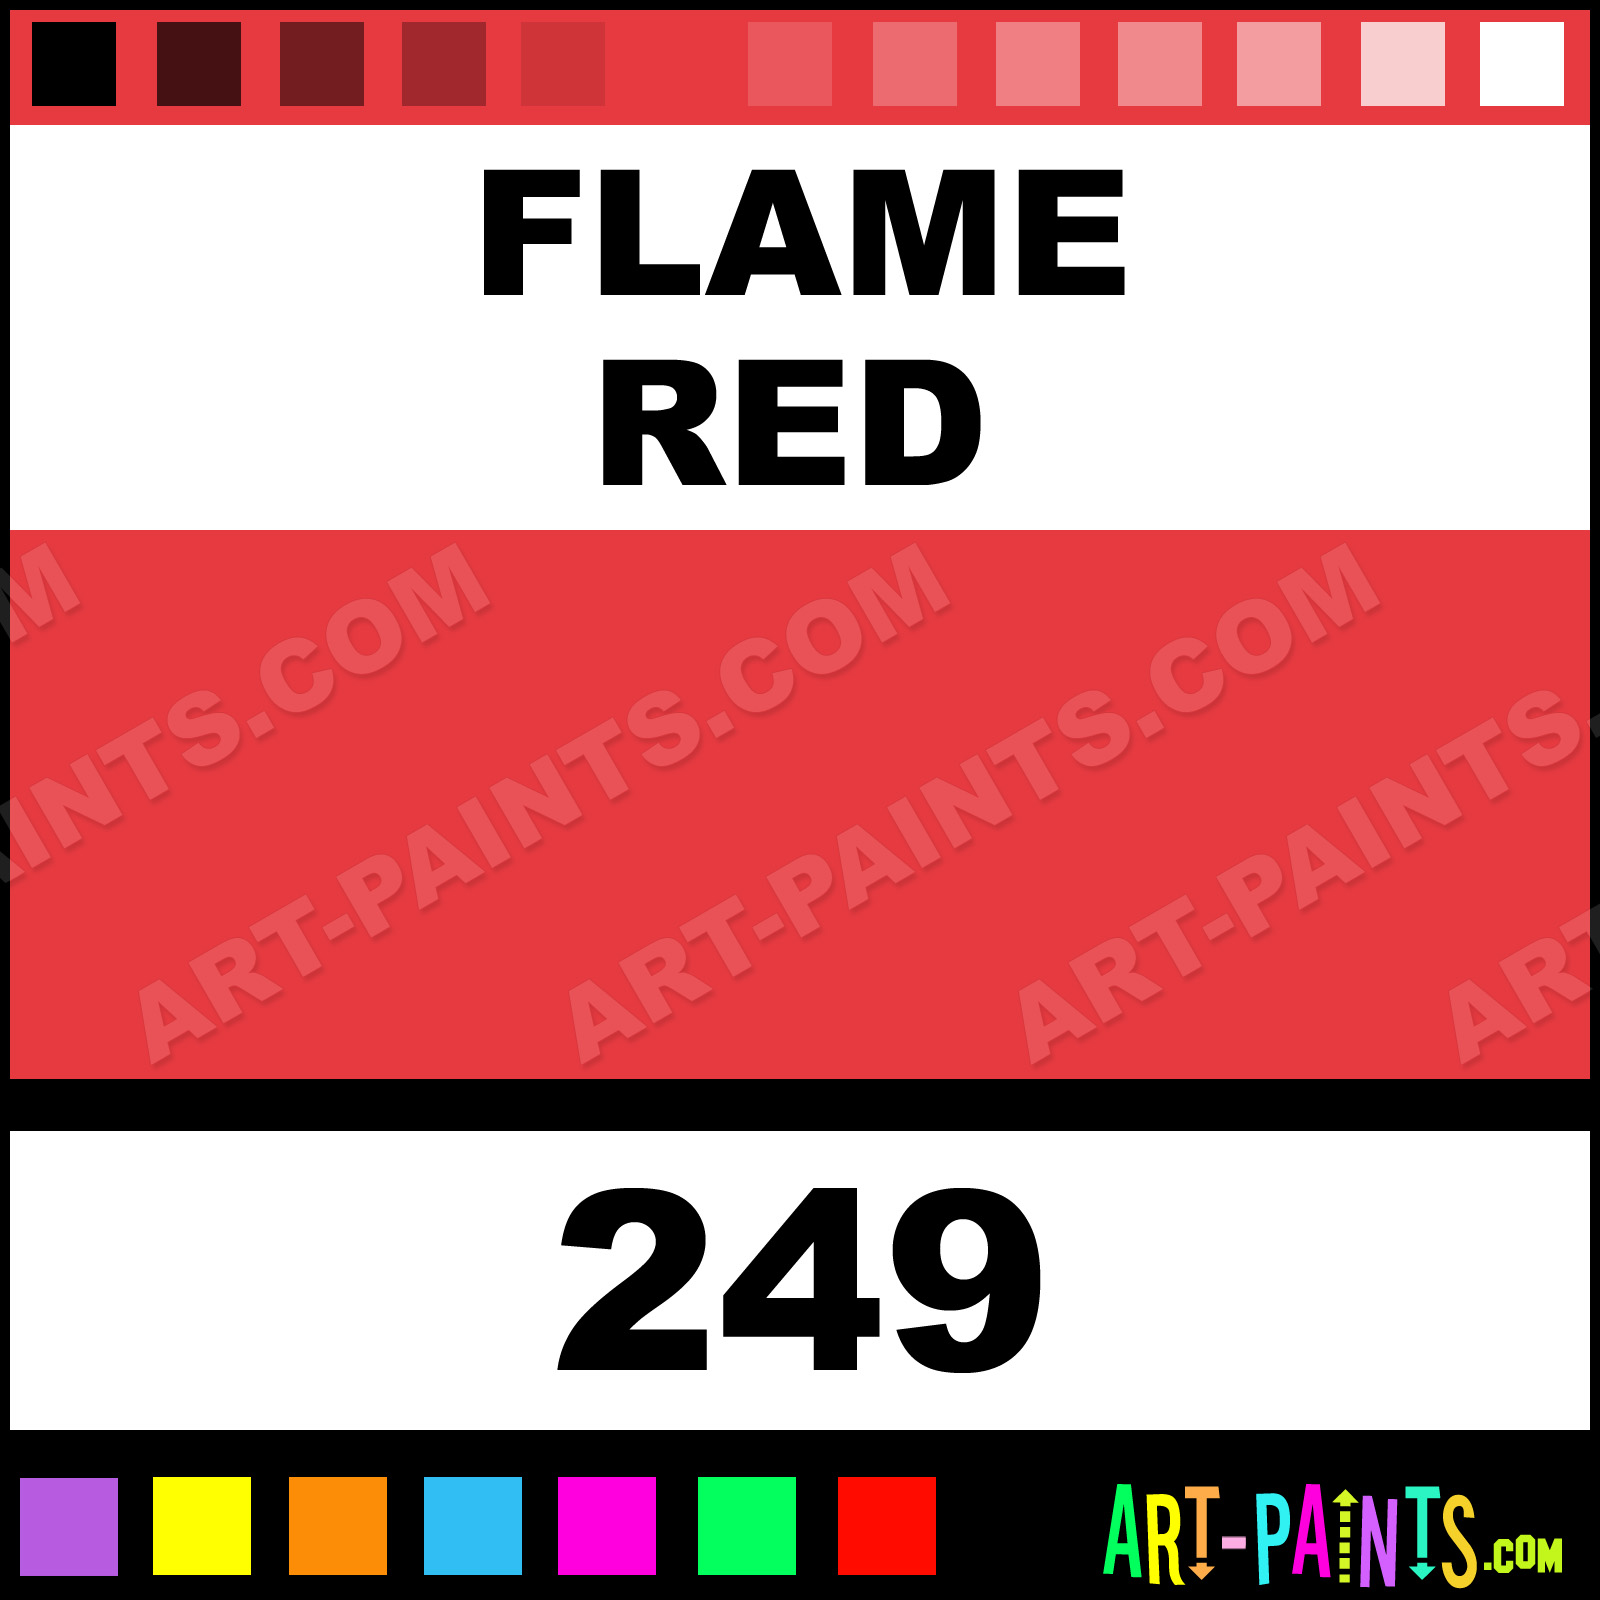 Flame Red Designers Gouache Paints 249 Flame Red Paint